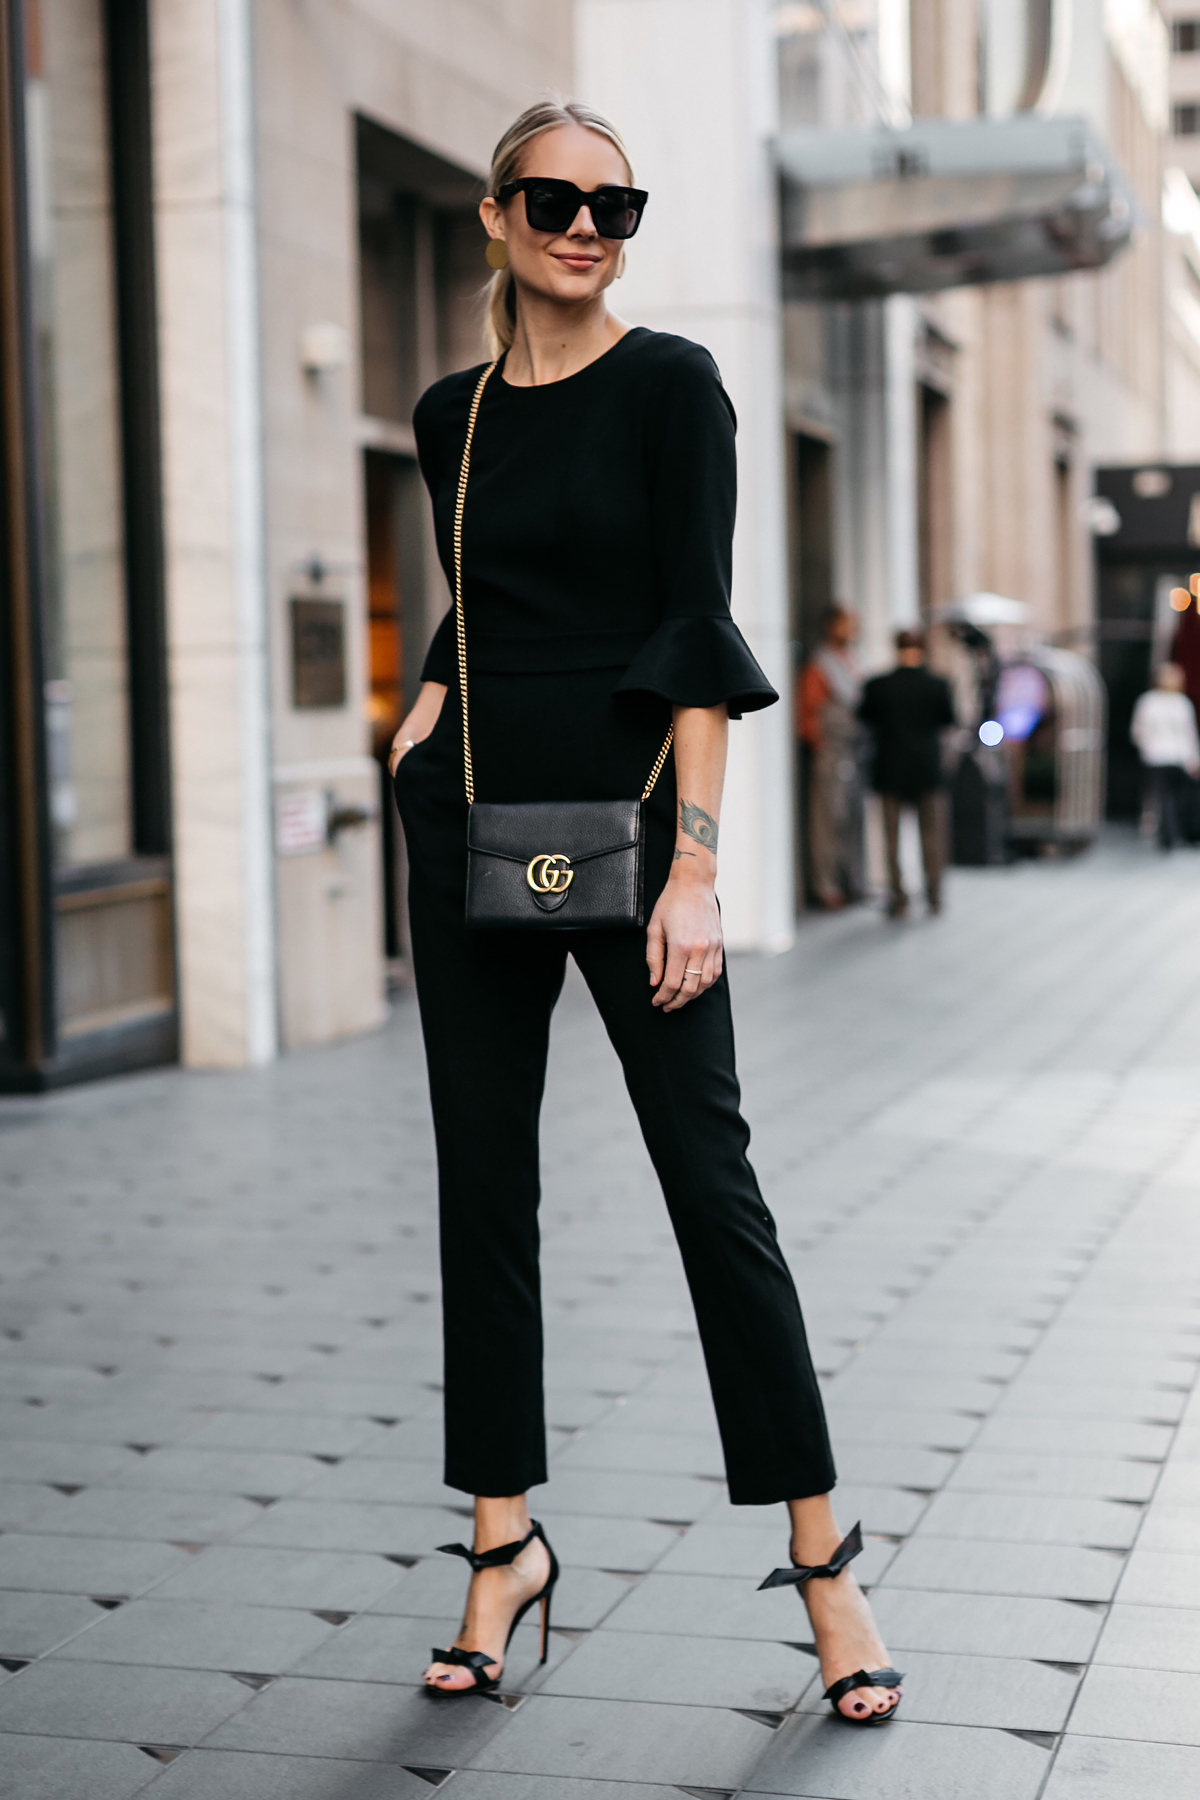 Blonde Woman Wearing Black Ruffle Sleeve Jumpsuit Gucci Marmont Black Handbag Black Bow Tie Heels Gold Disc Earrings Black Celine Sunglasses Fashion Jackson Dallas Blogger Fashion Blogger Street Style